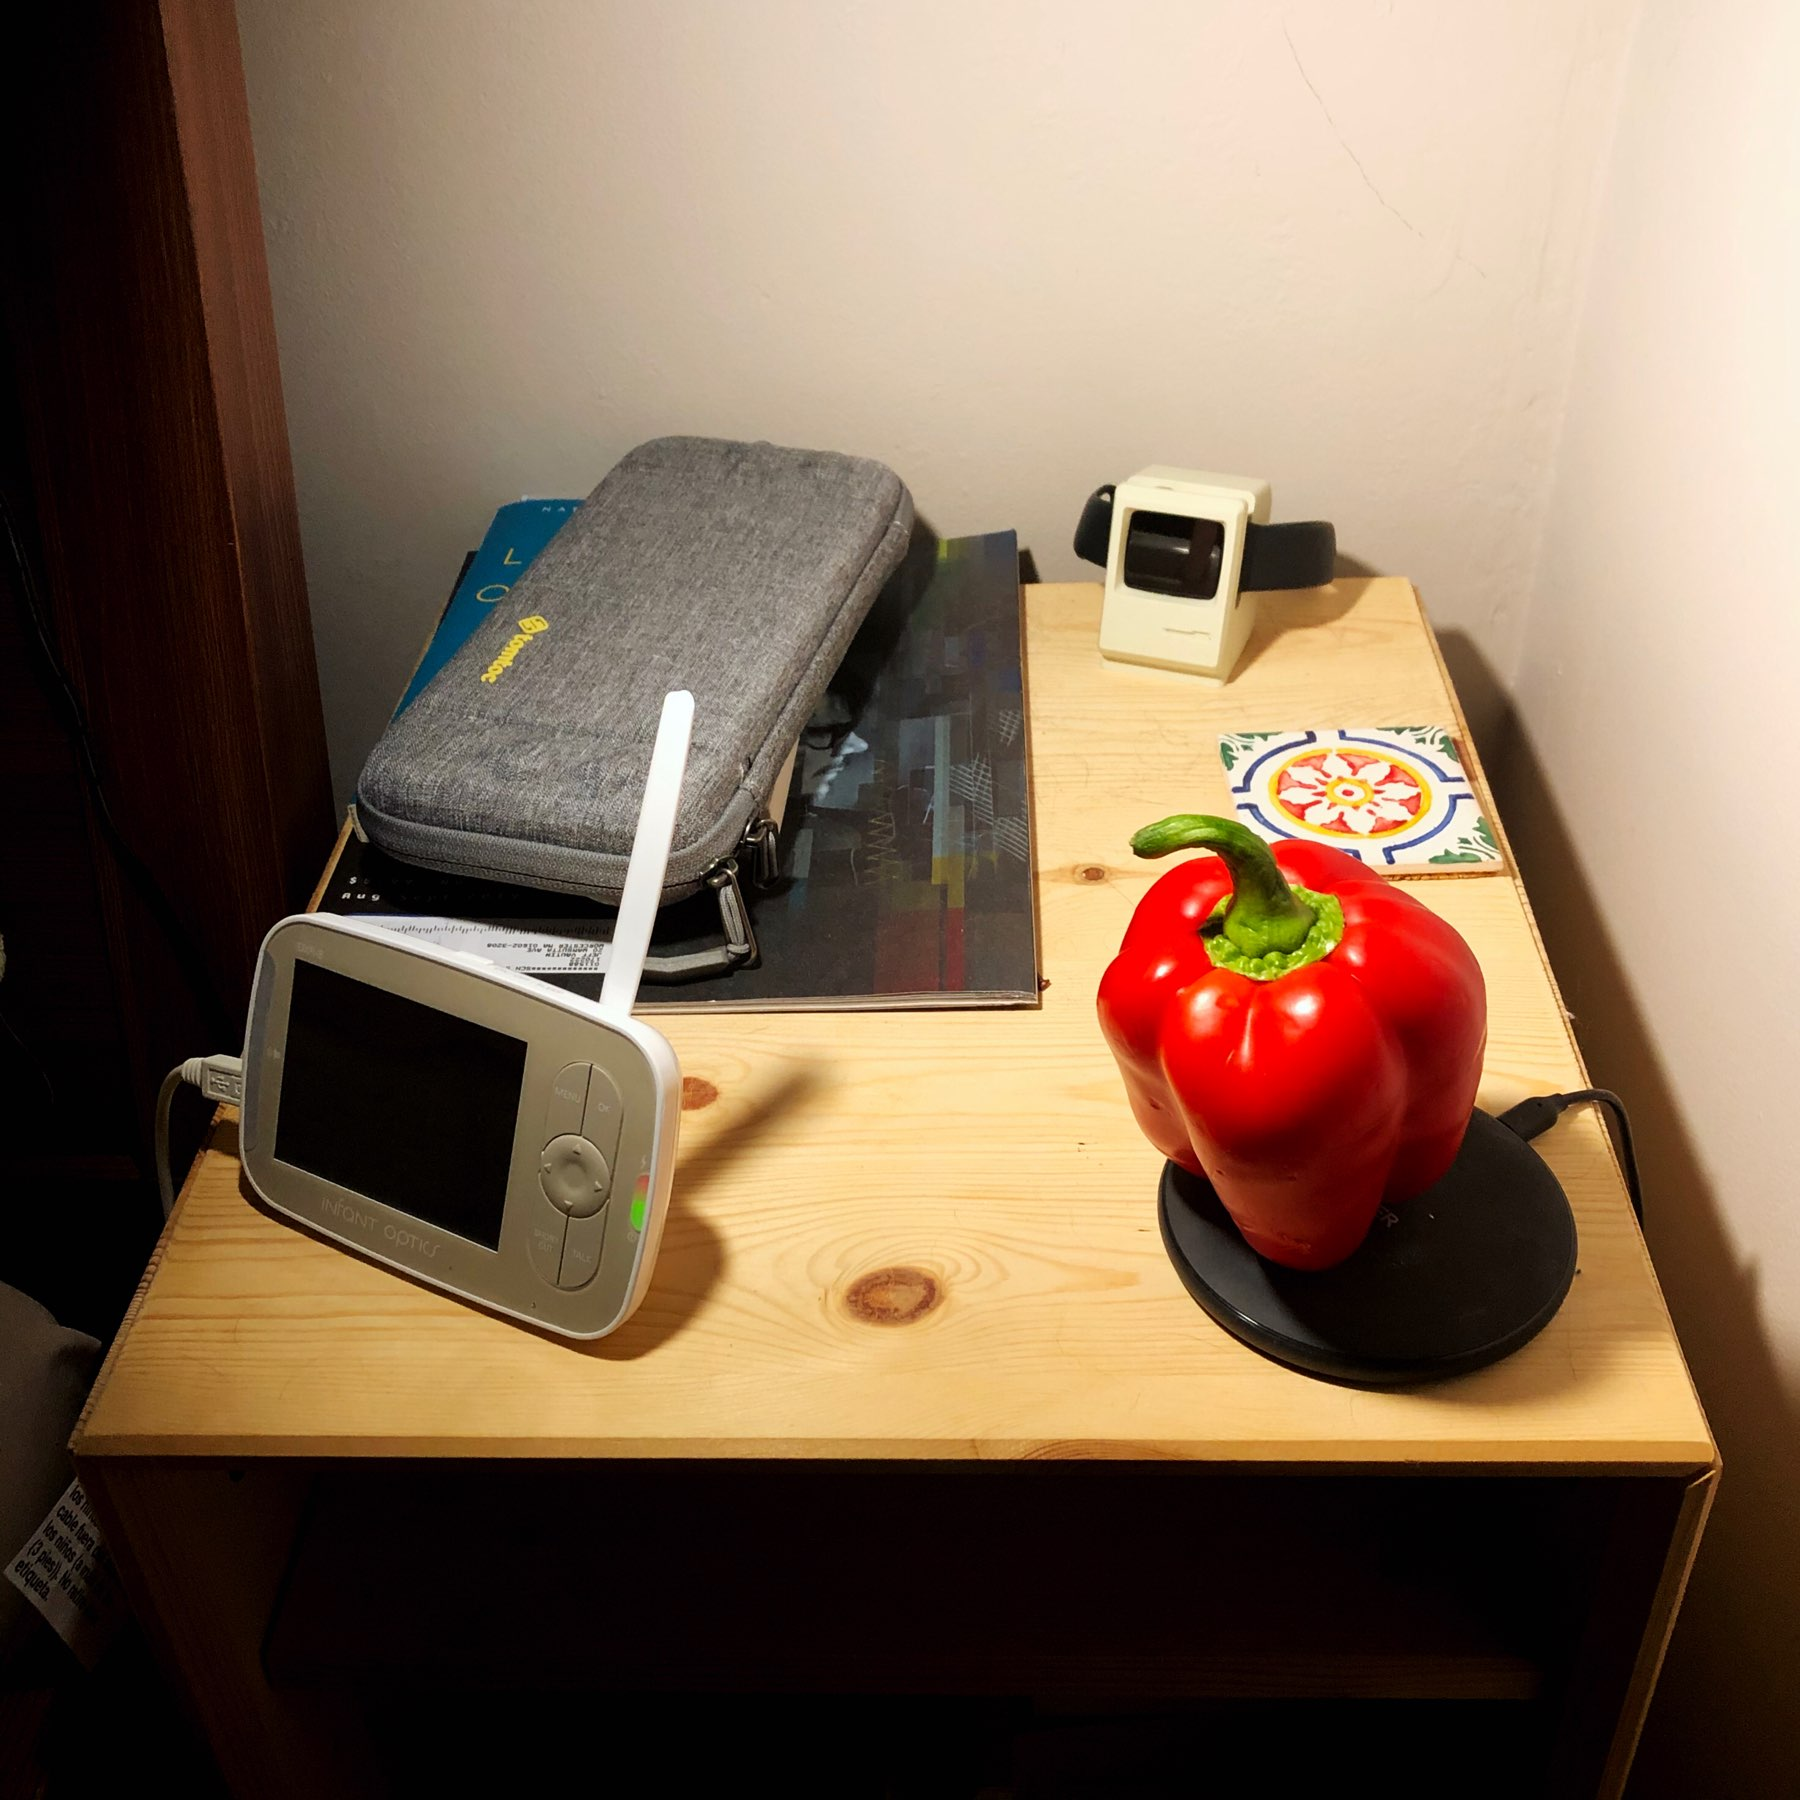 Nightstand with red pepper balanced on a phone charger.